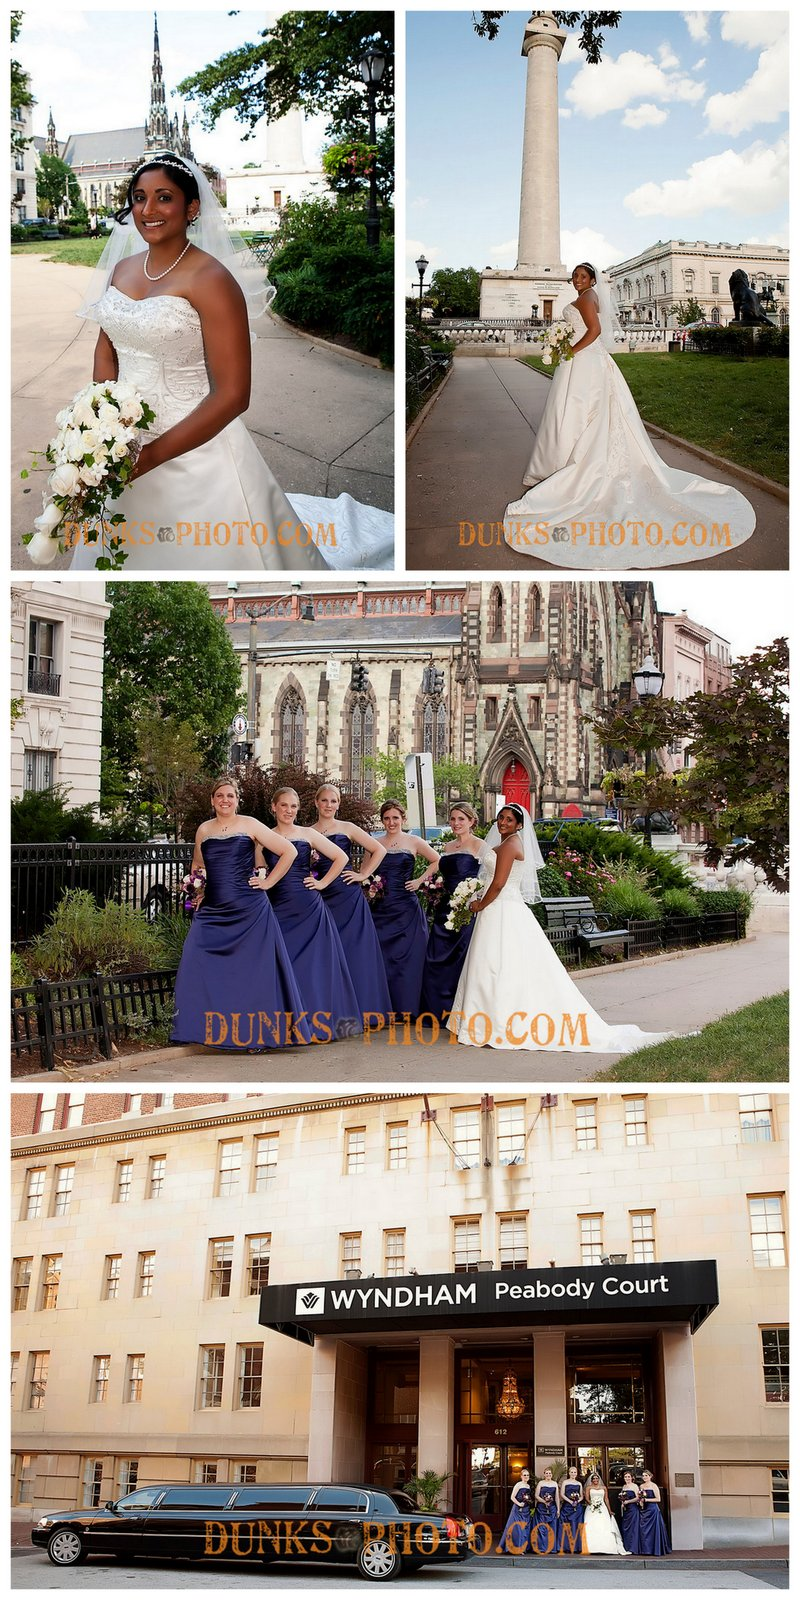 tags annapolis courthouse wedding photography baltimore